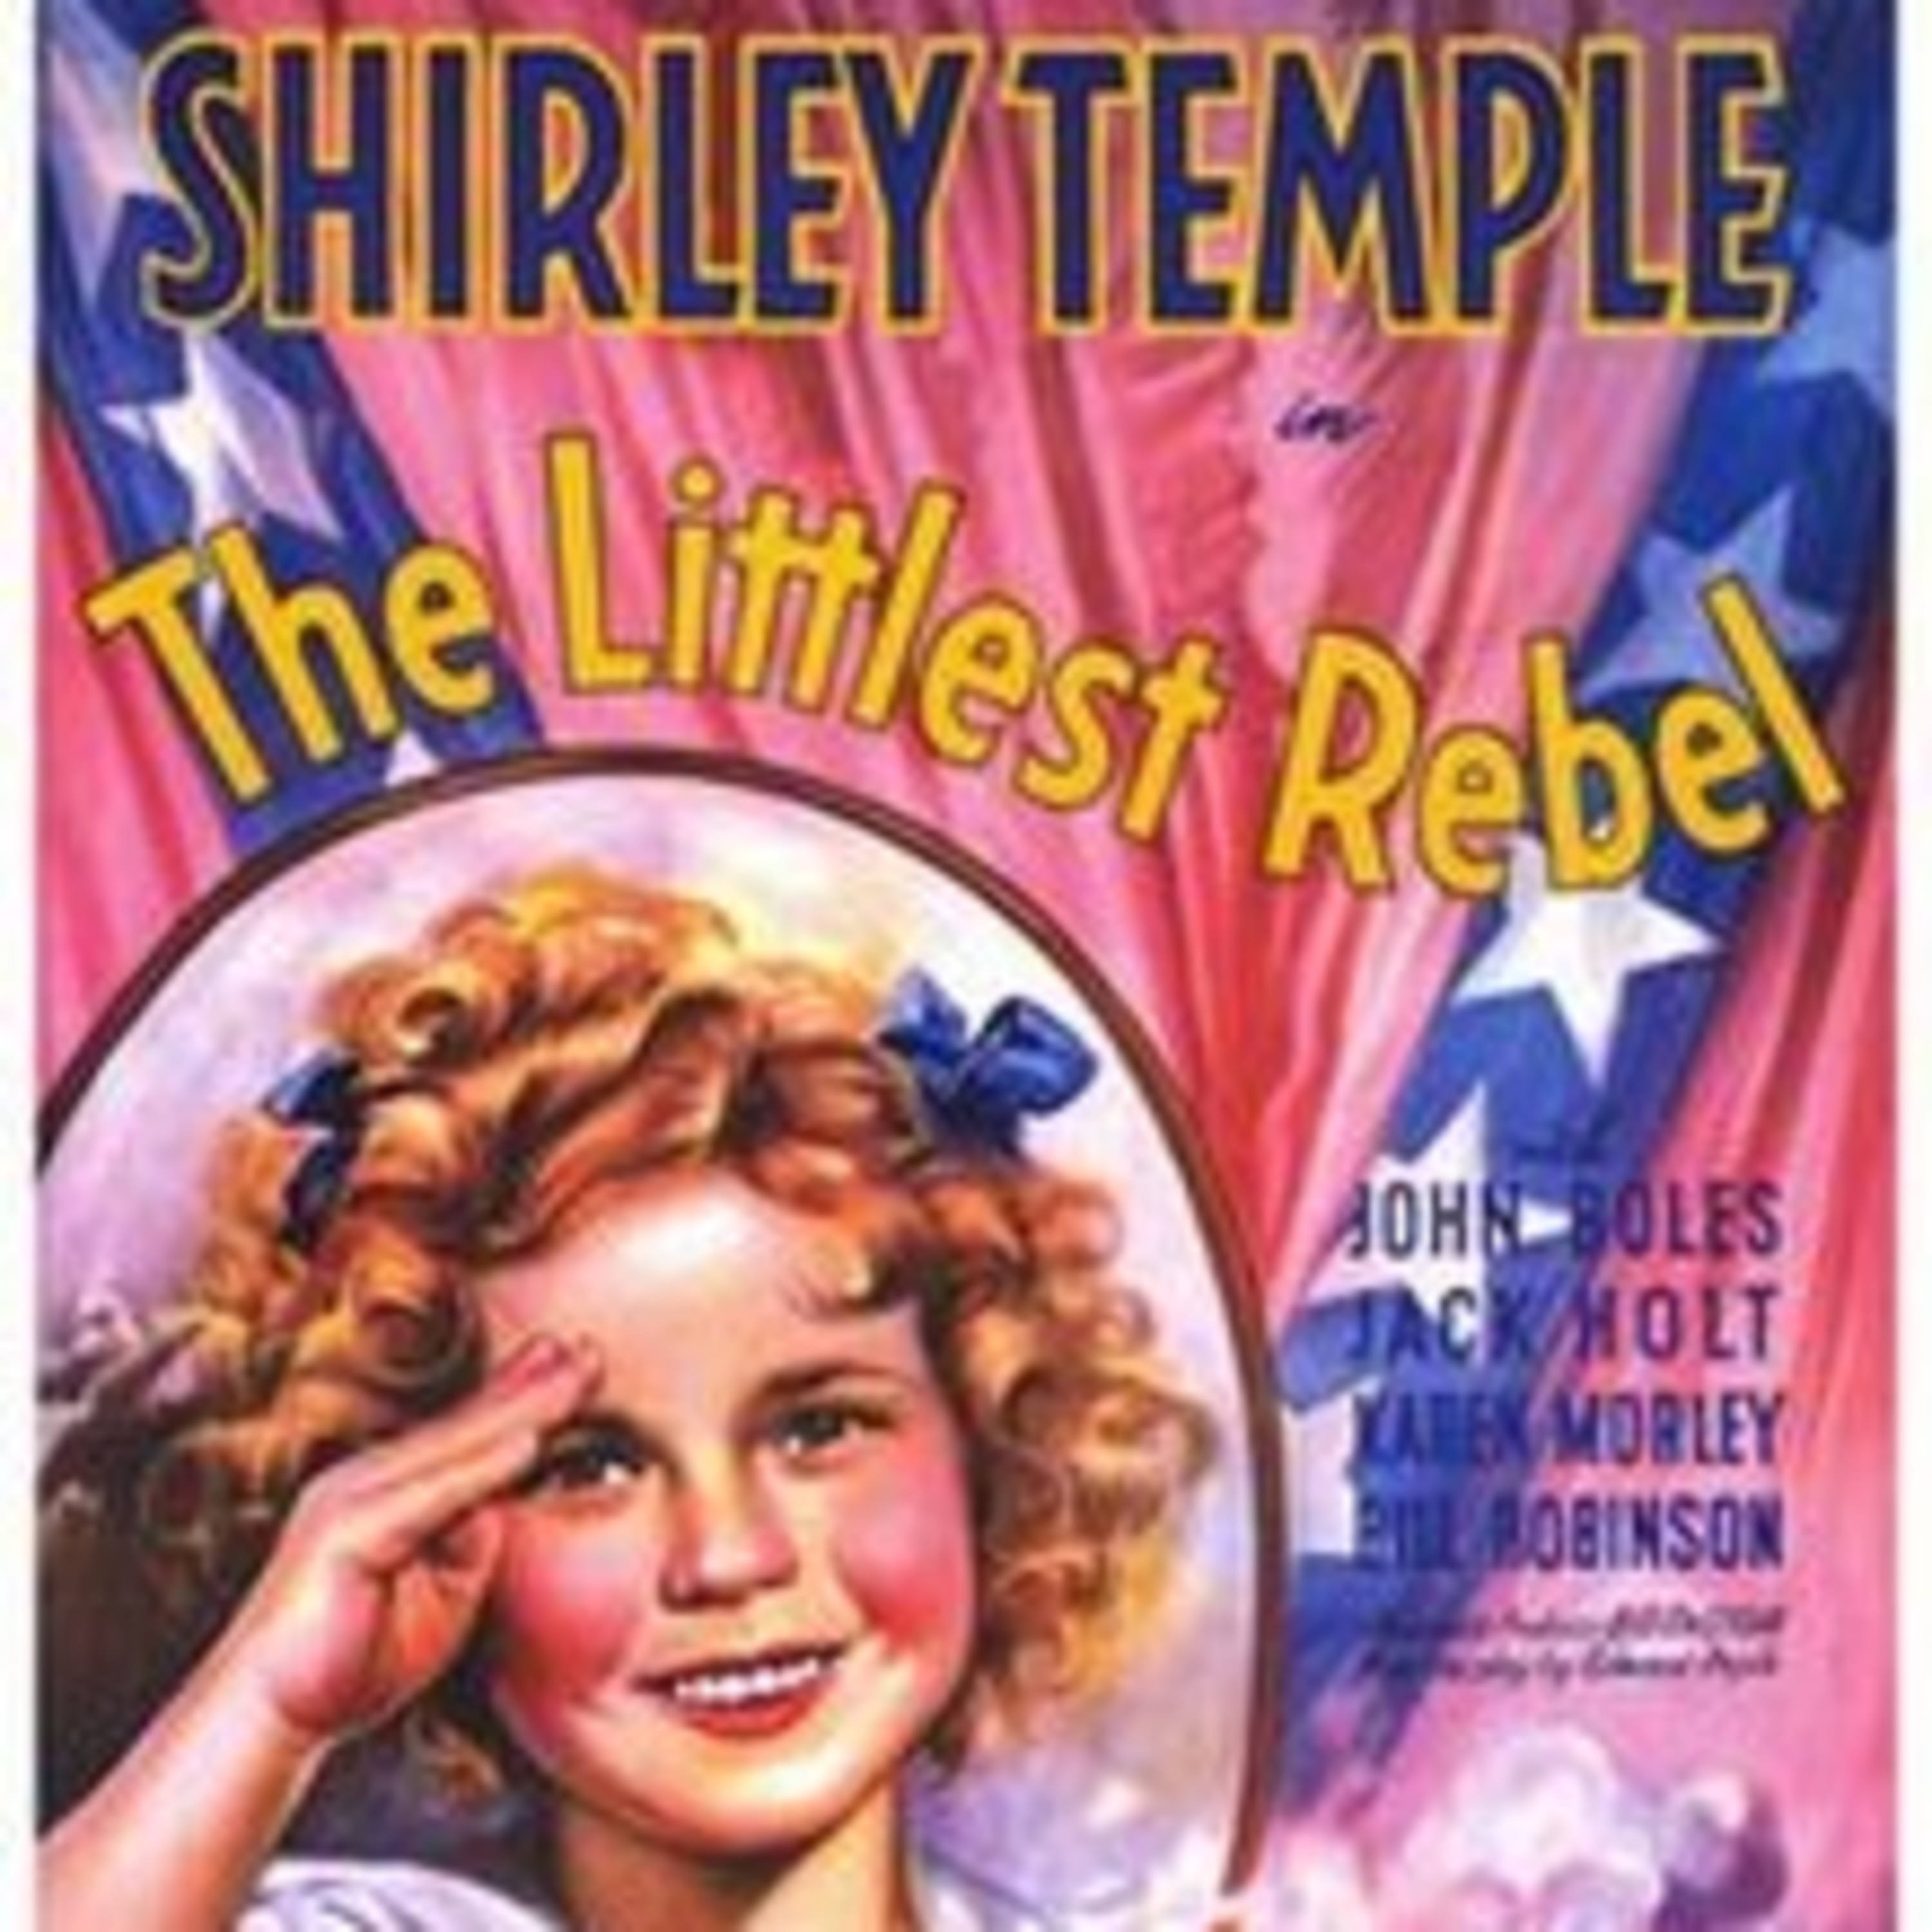 The Littlest Rebel - Shirley Temple and Claude Raines - All-Star Radio Dramas of Classic Movies - Lux Radio Theater